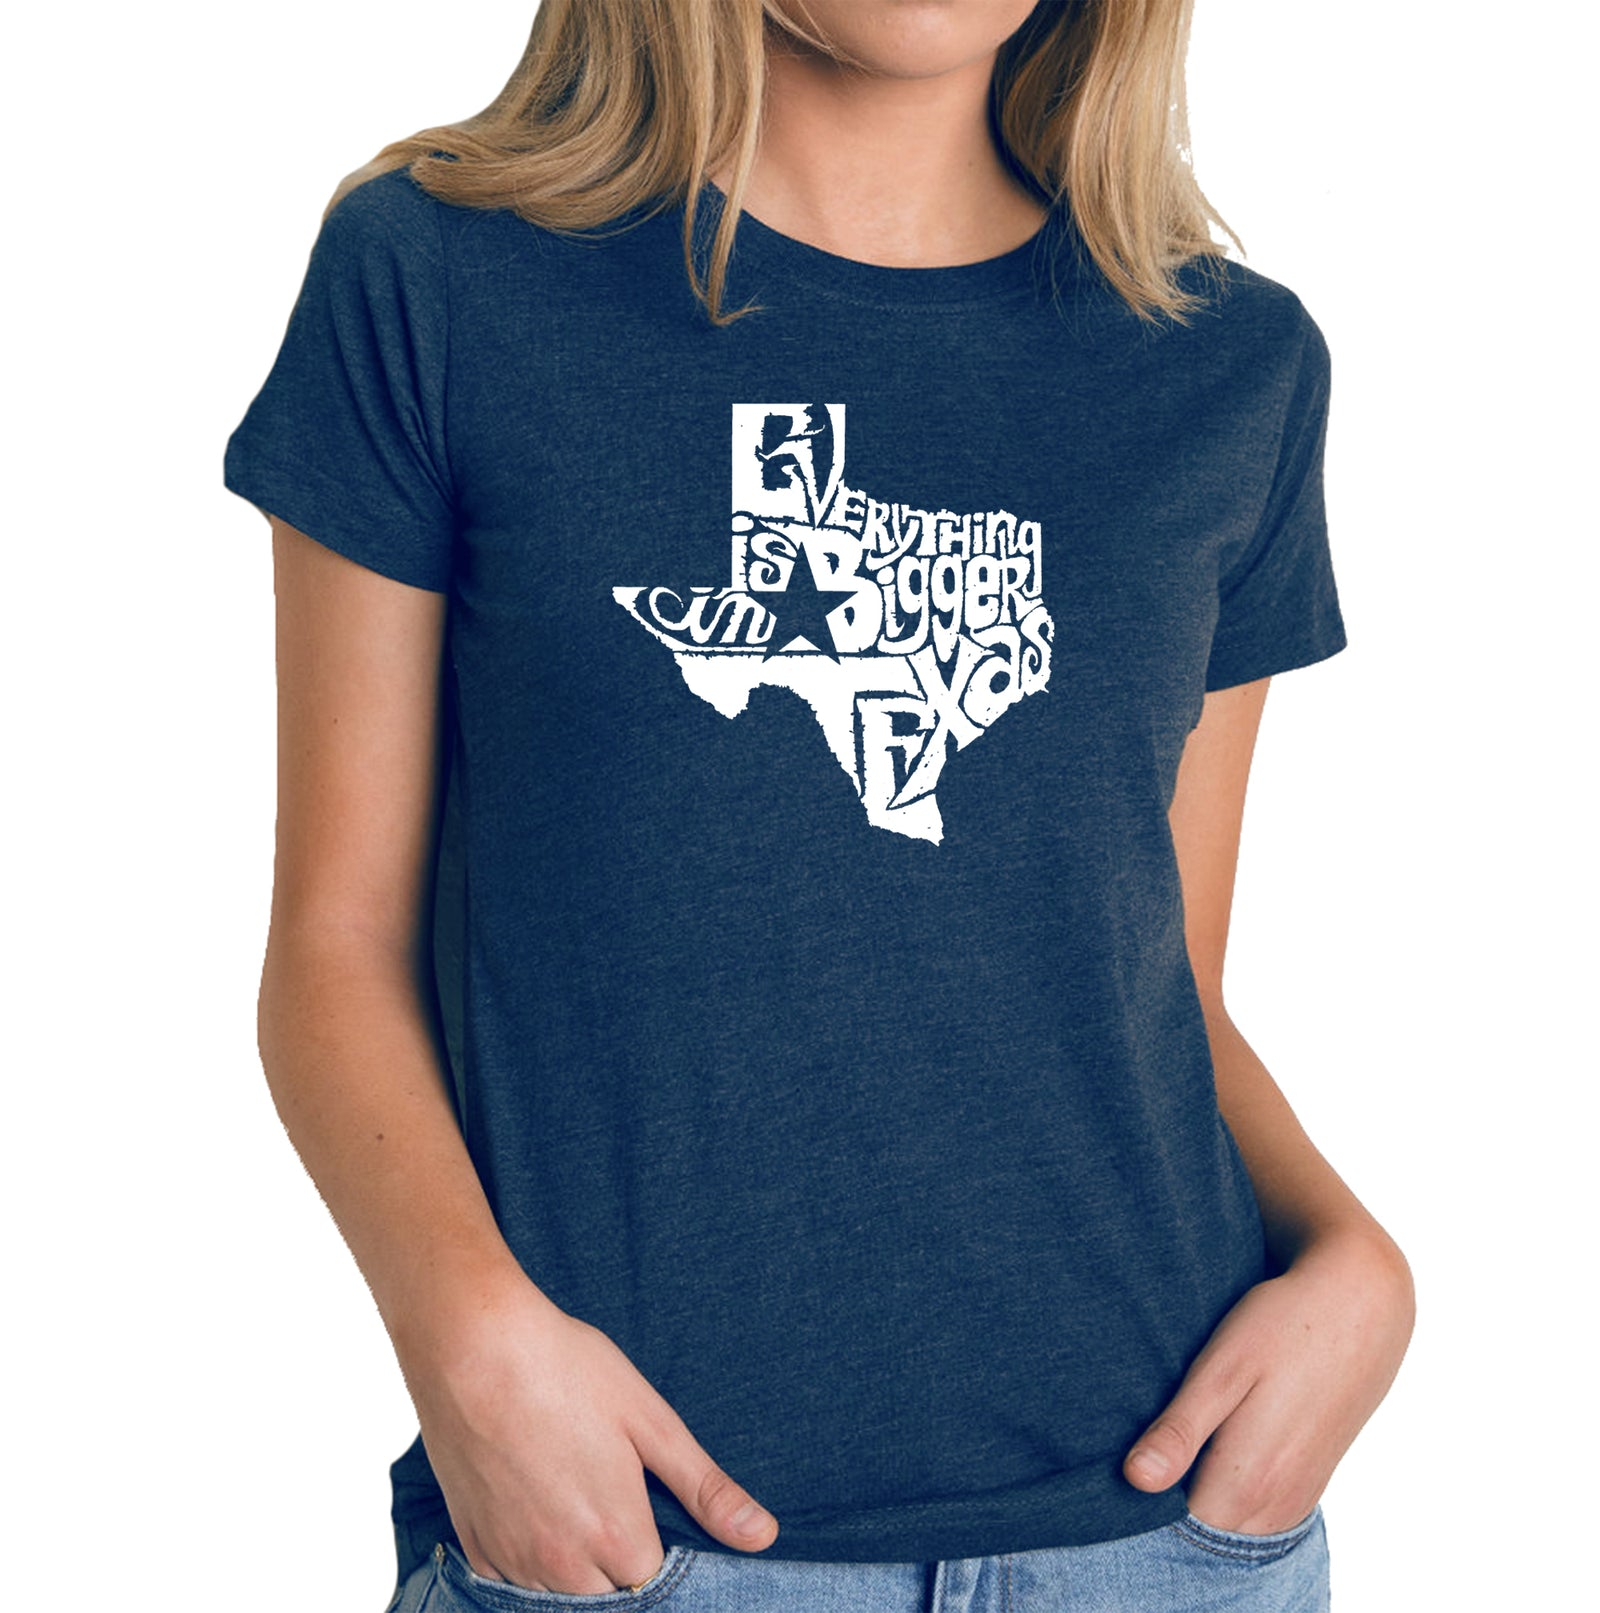 Women's Premium Blend Word Art T-shirt - Everything is Bigger in Texas